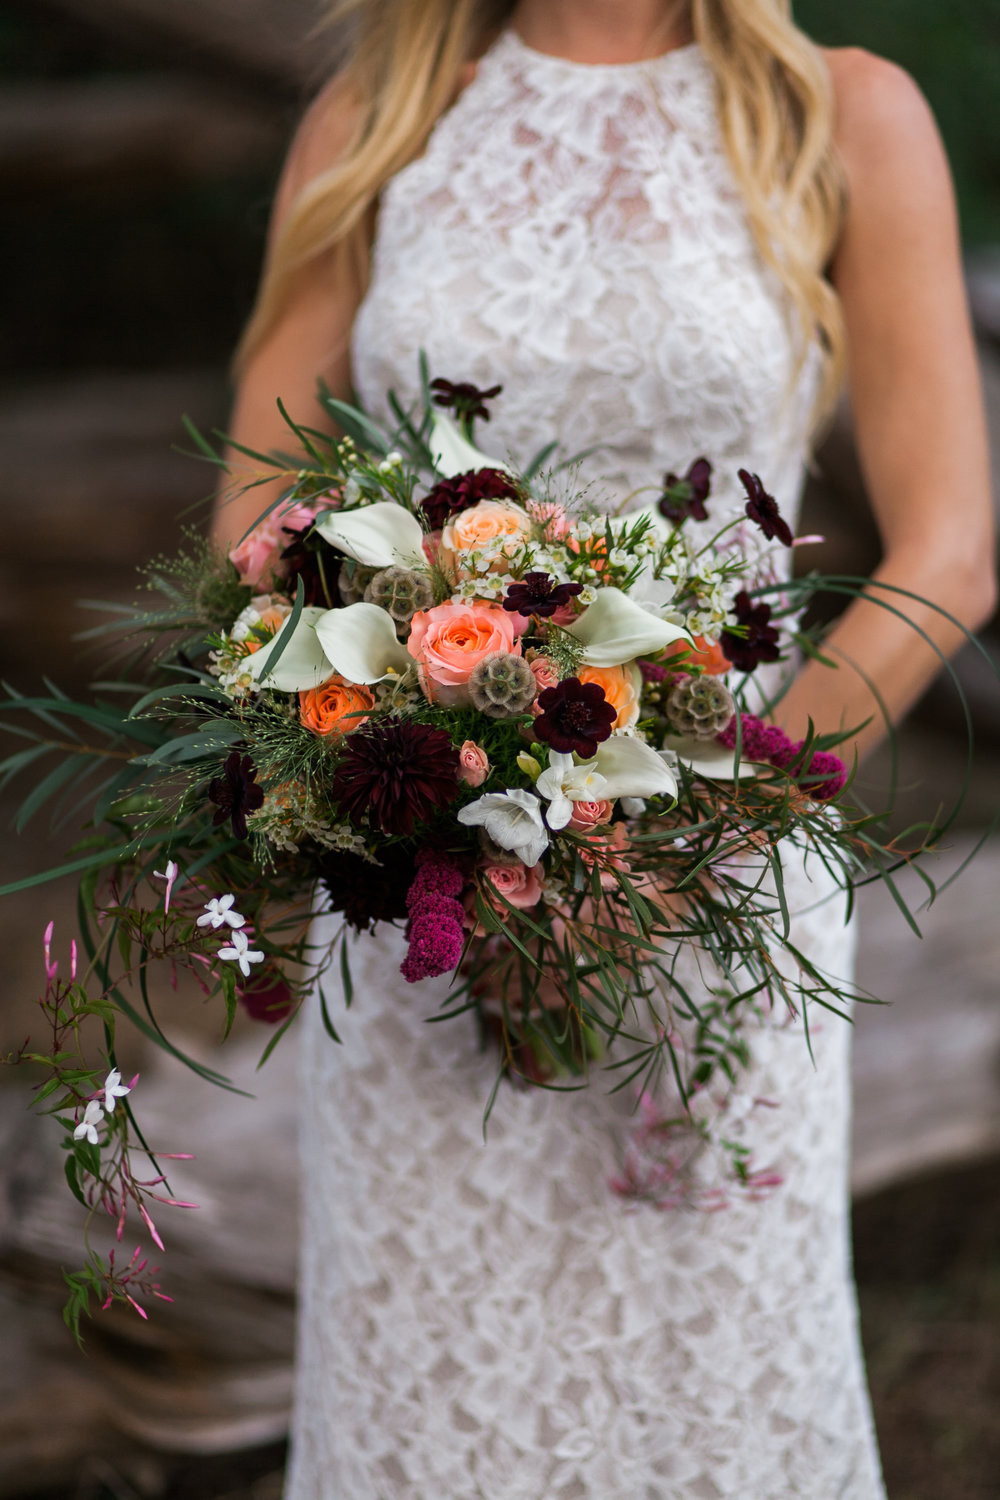 MENDOCINO FLORIST LR FARMS MARIA VILLANO PHOTOGRAPHY